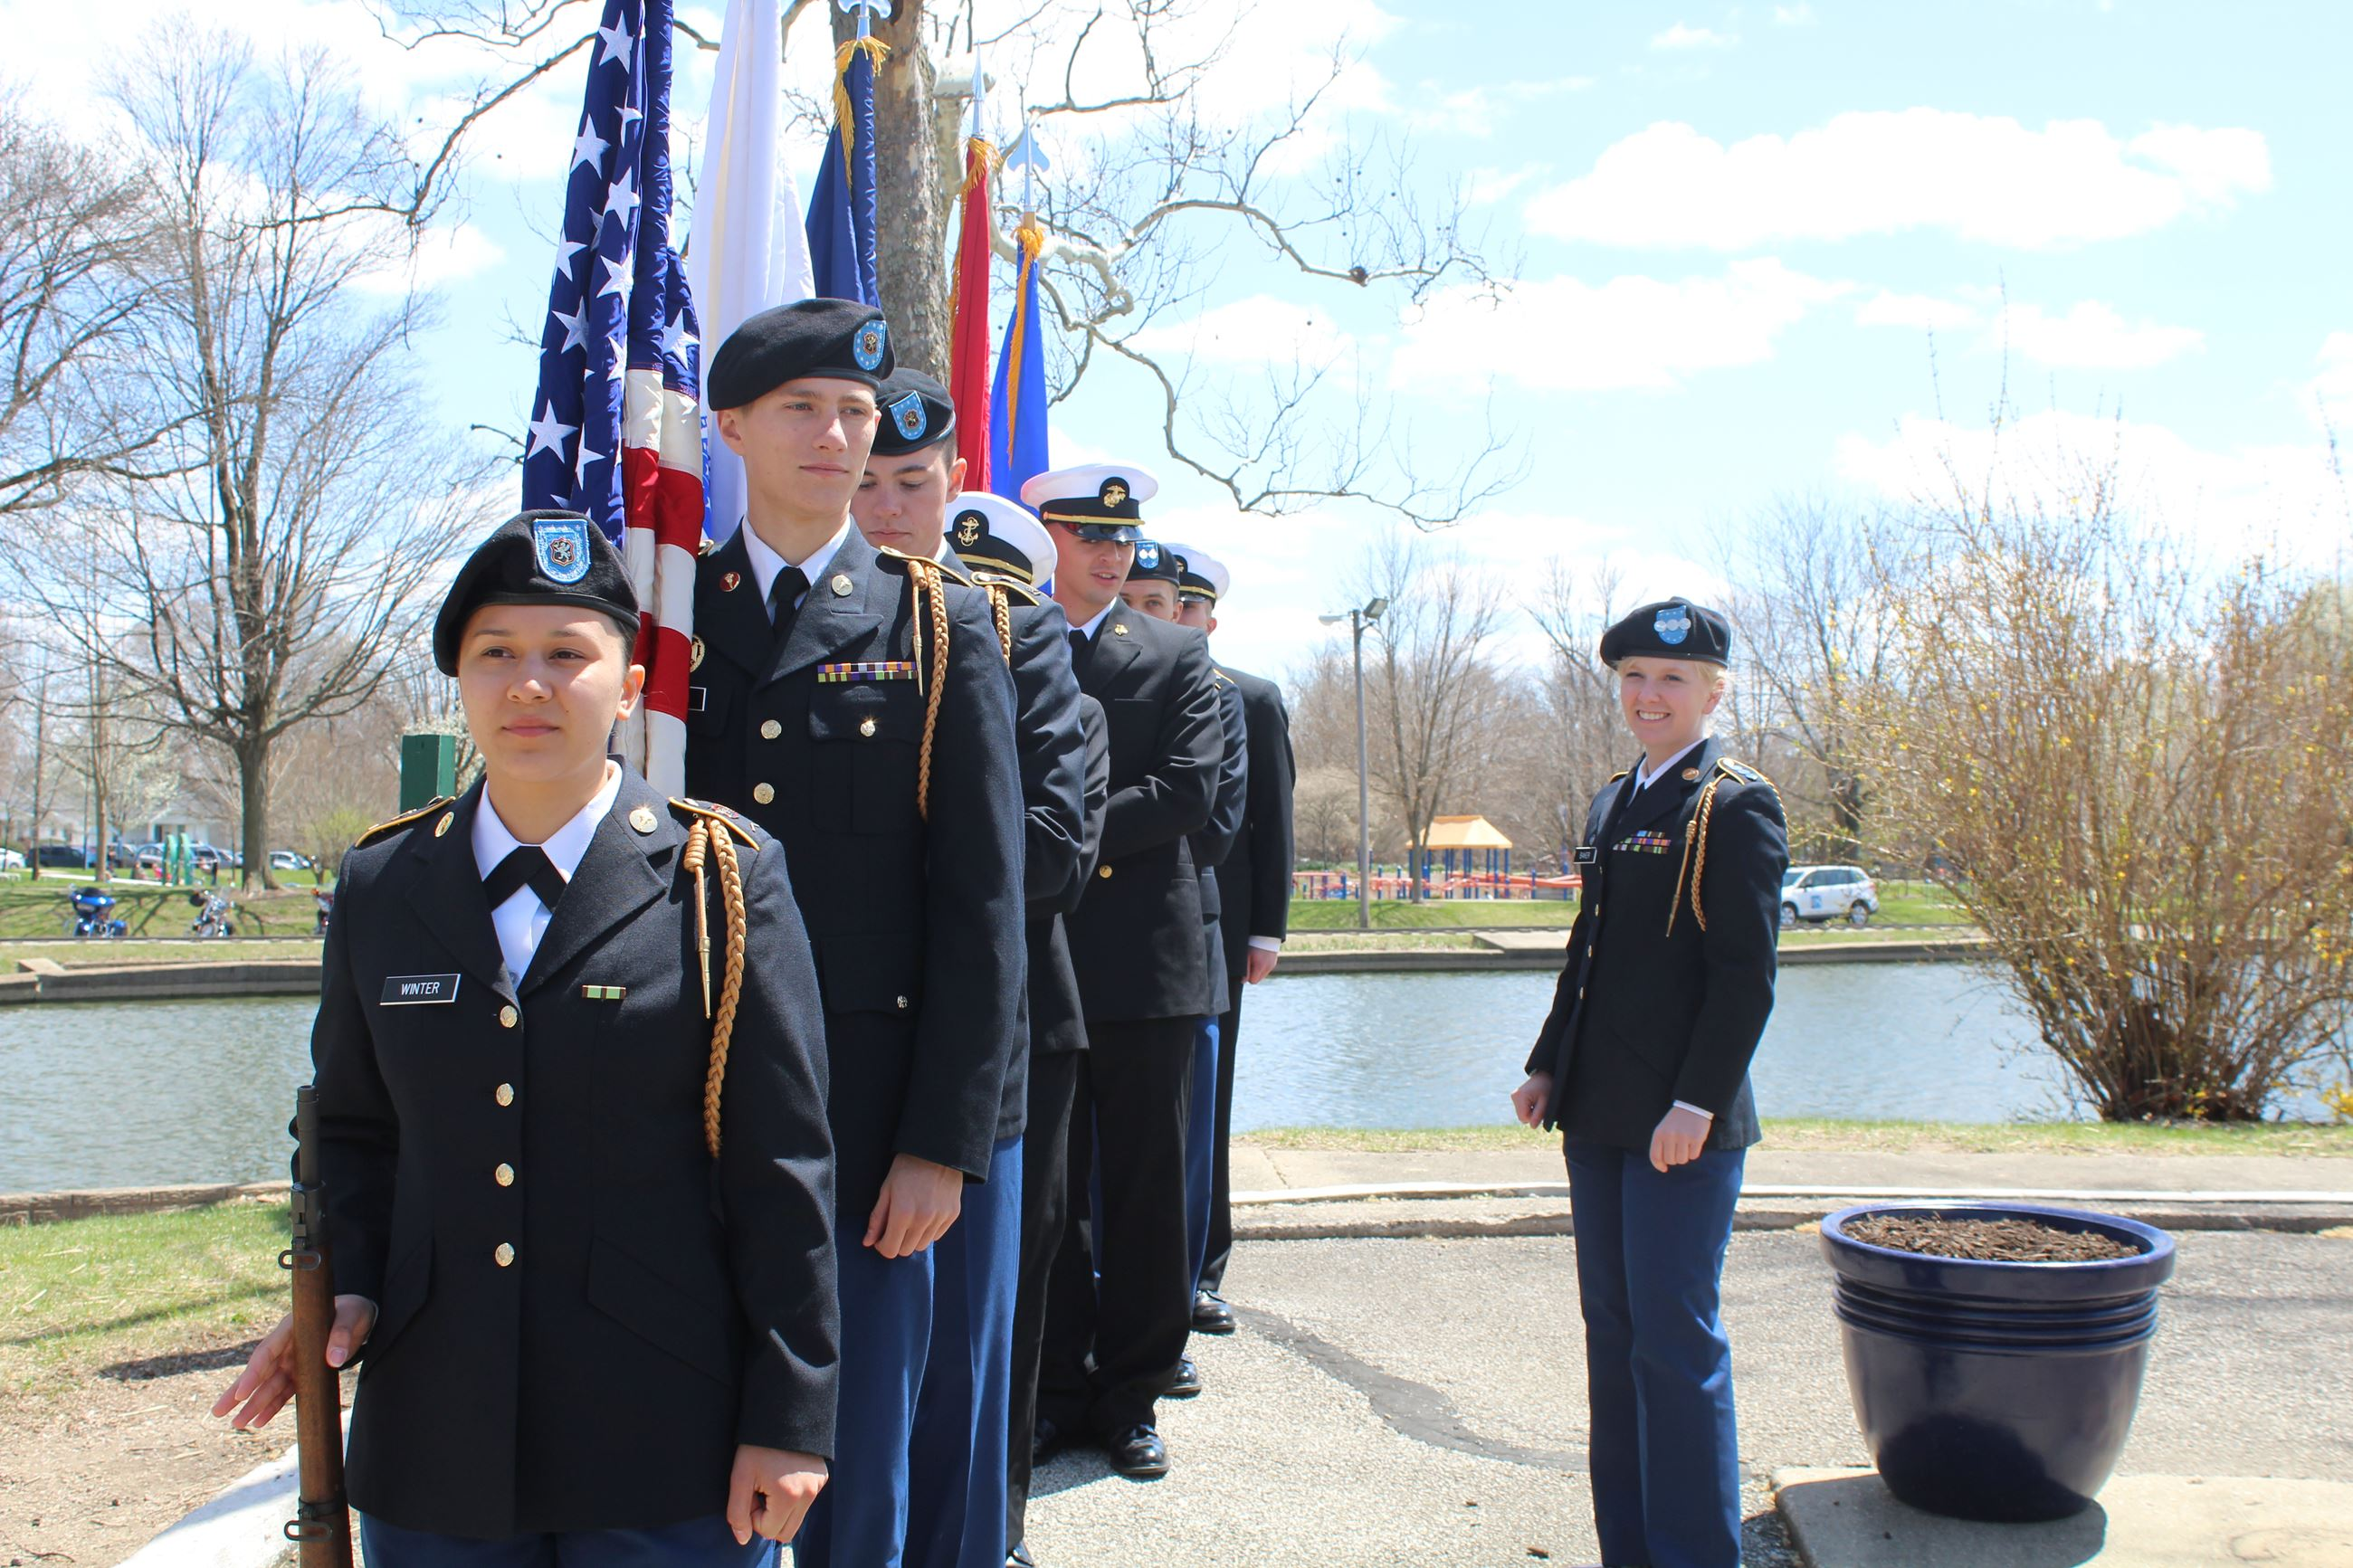 Vietnam Veterans Welcome Home - Color Guard at Memorial Island